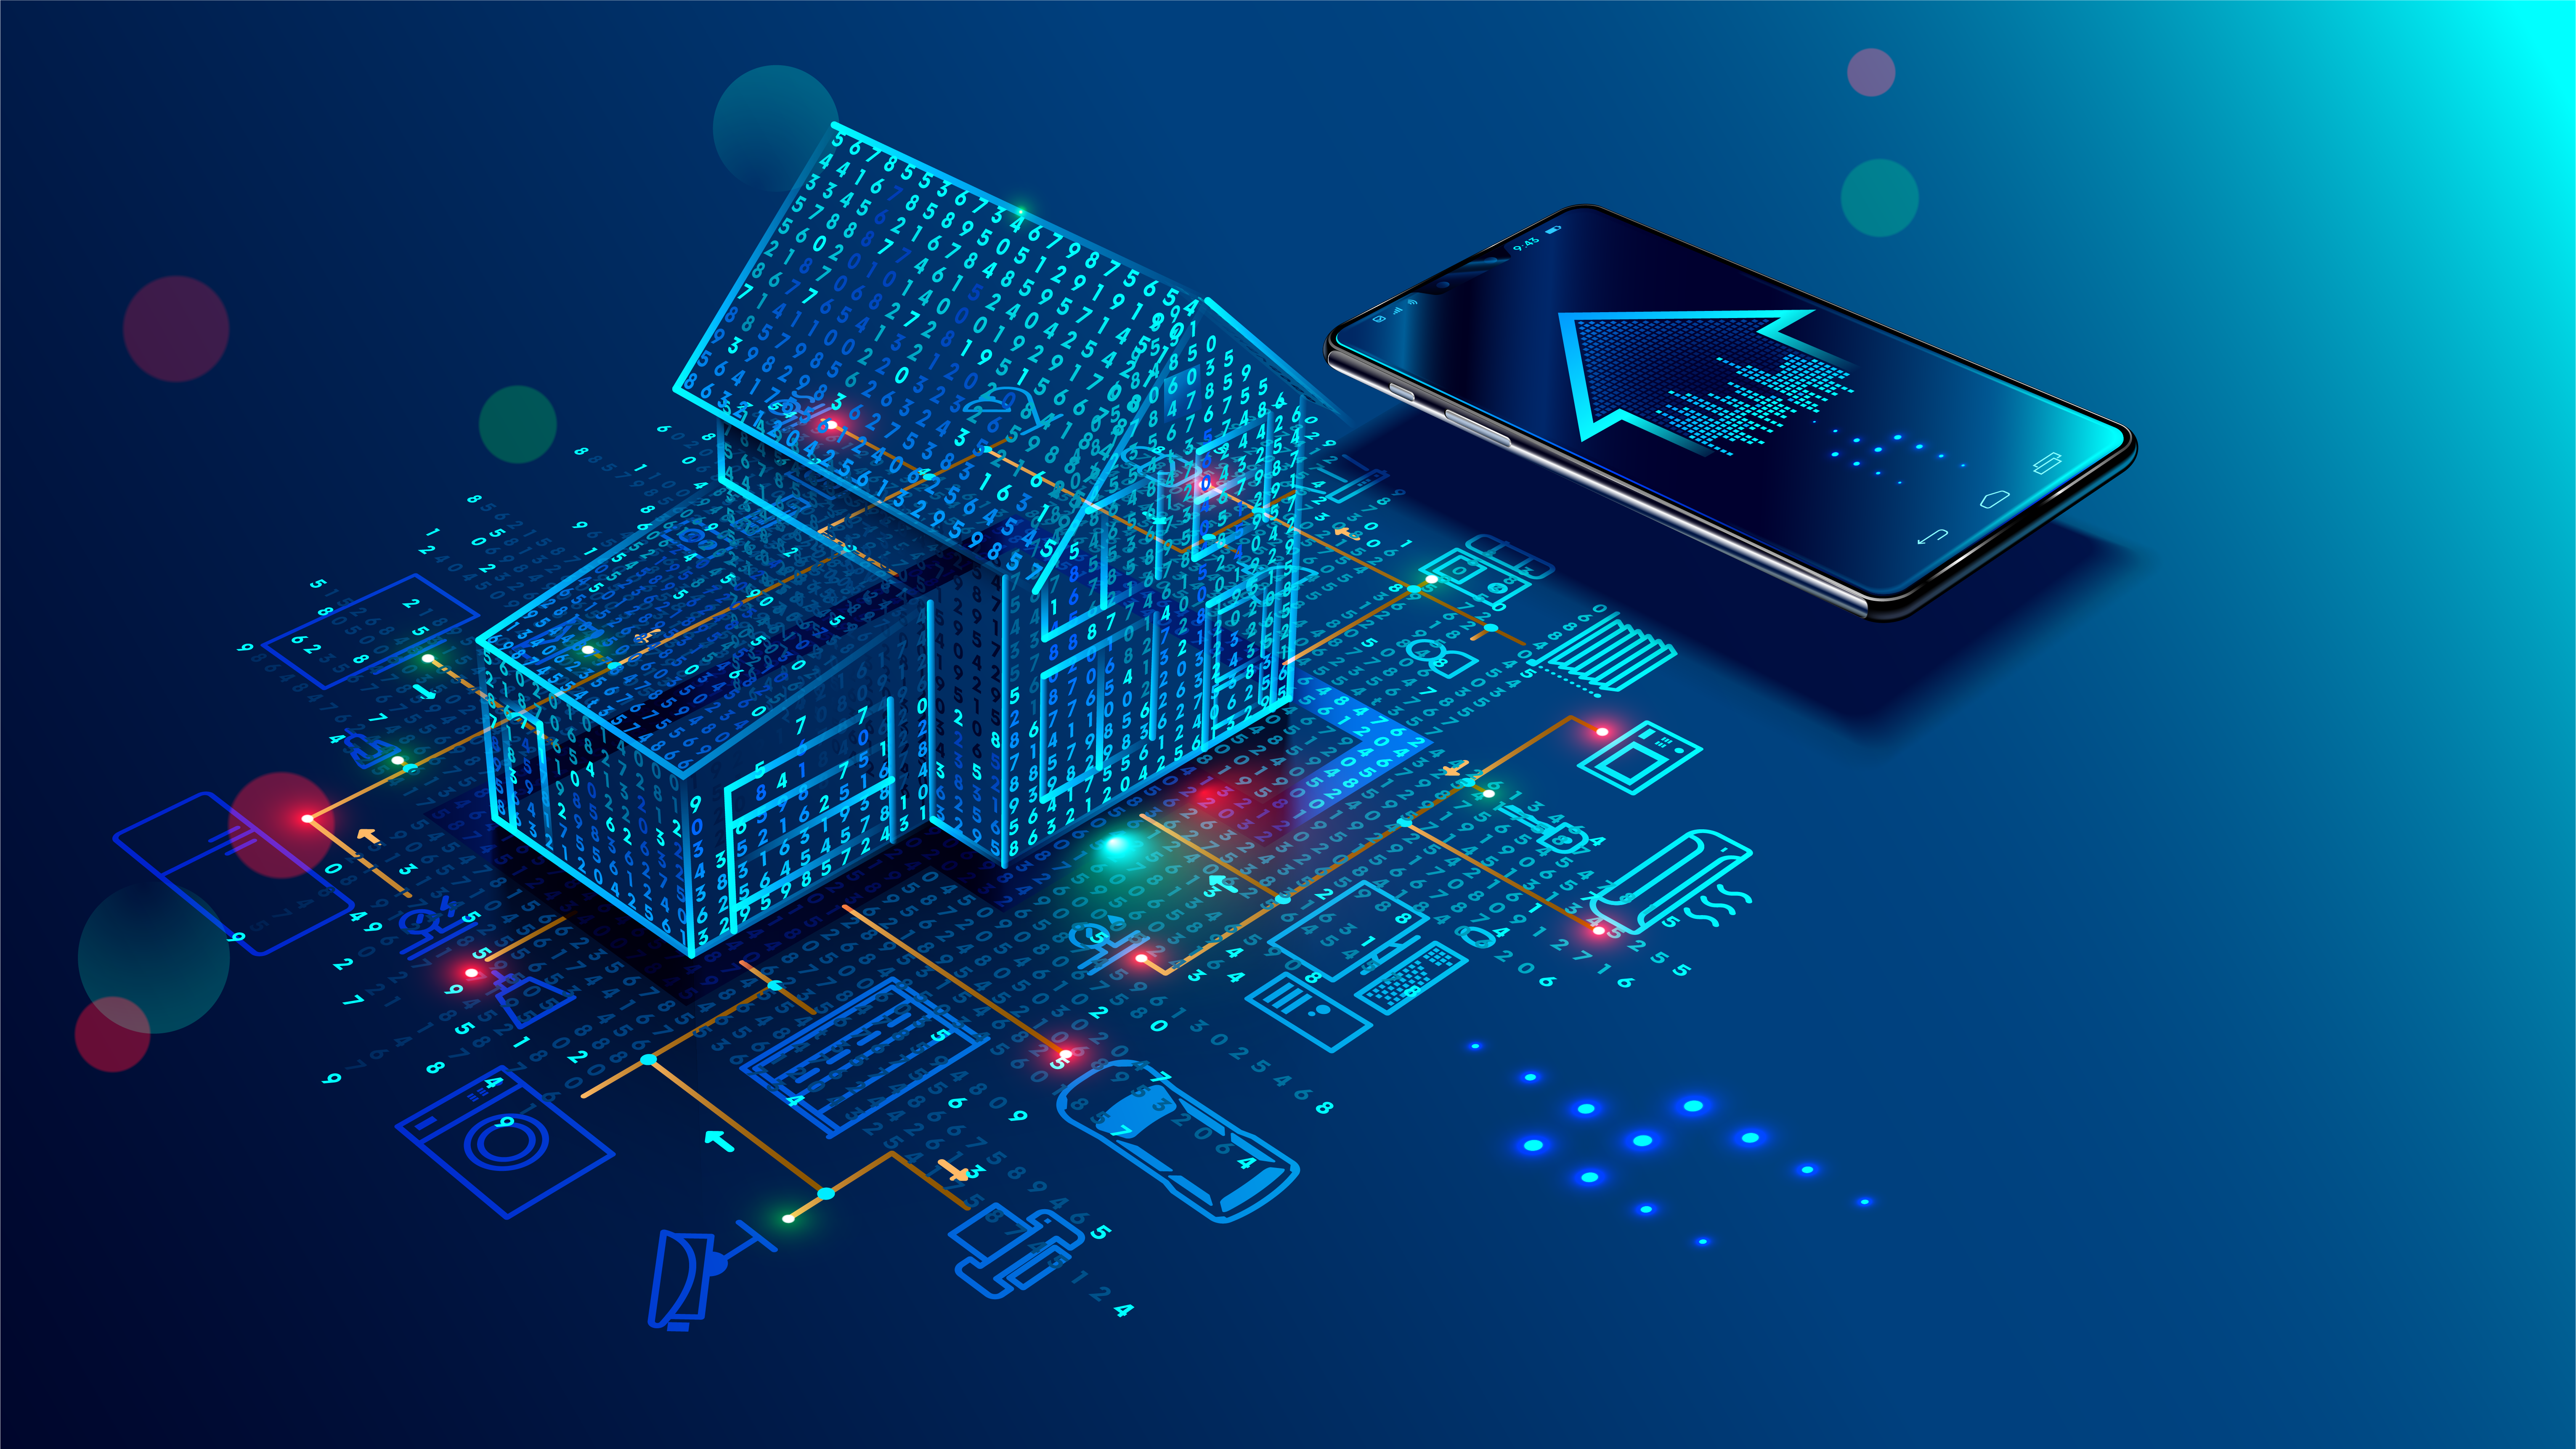 5 ways to upgrade your home using tech